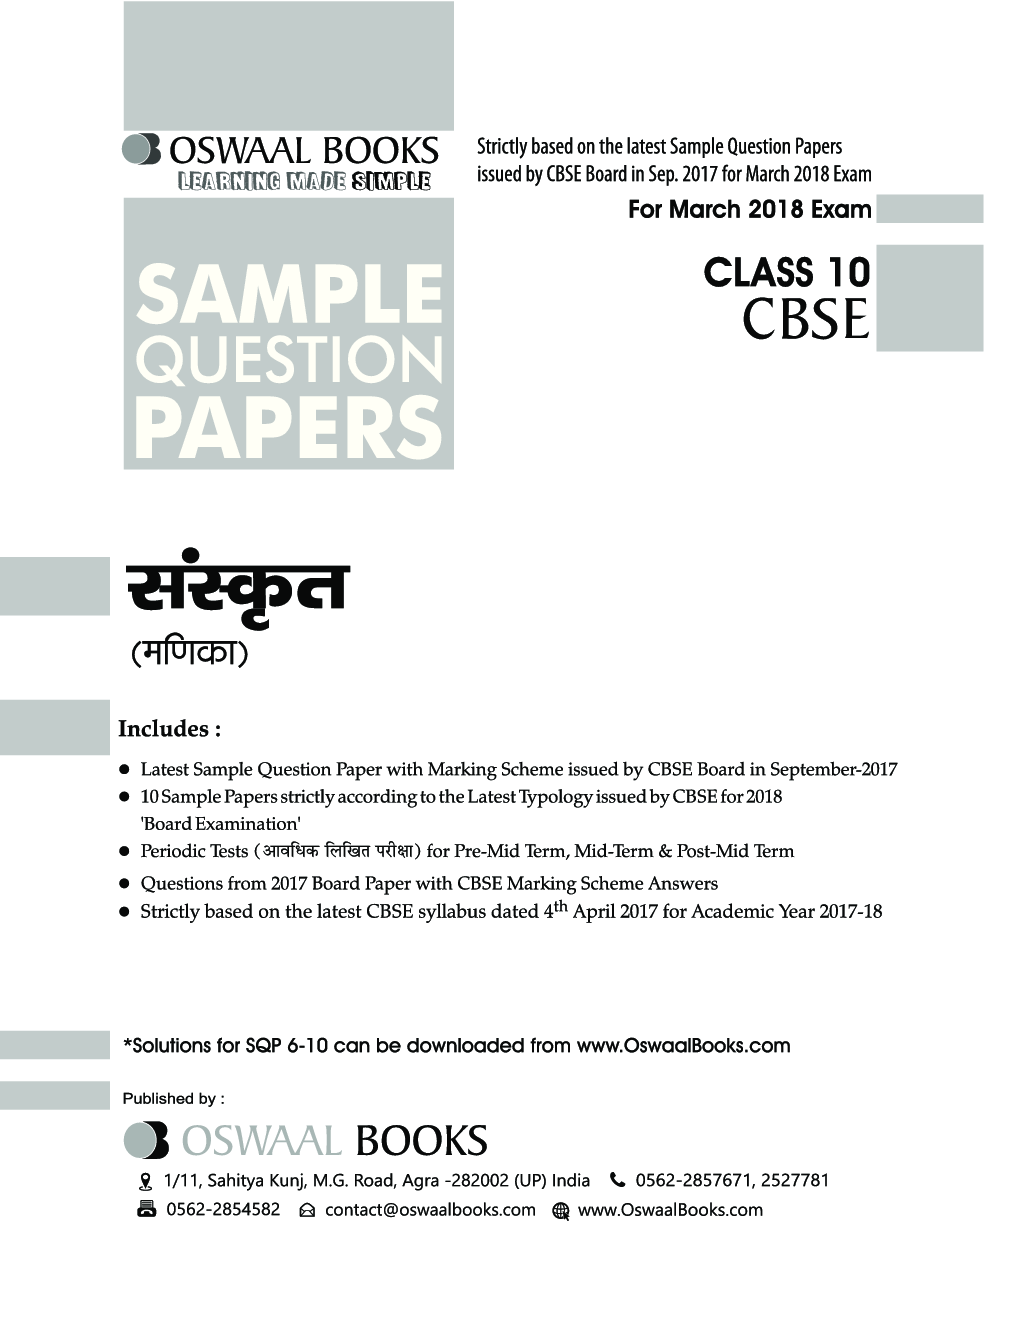 My Free Cbse Guidefree Ebooks Notes Question And Answers Expert Differential Pair Circuit Diagram Tradeoficcom Download Oswaal Sample Papers Class X Sanskrit Mar Rh Kopykitab Com